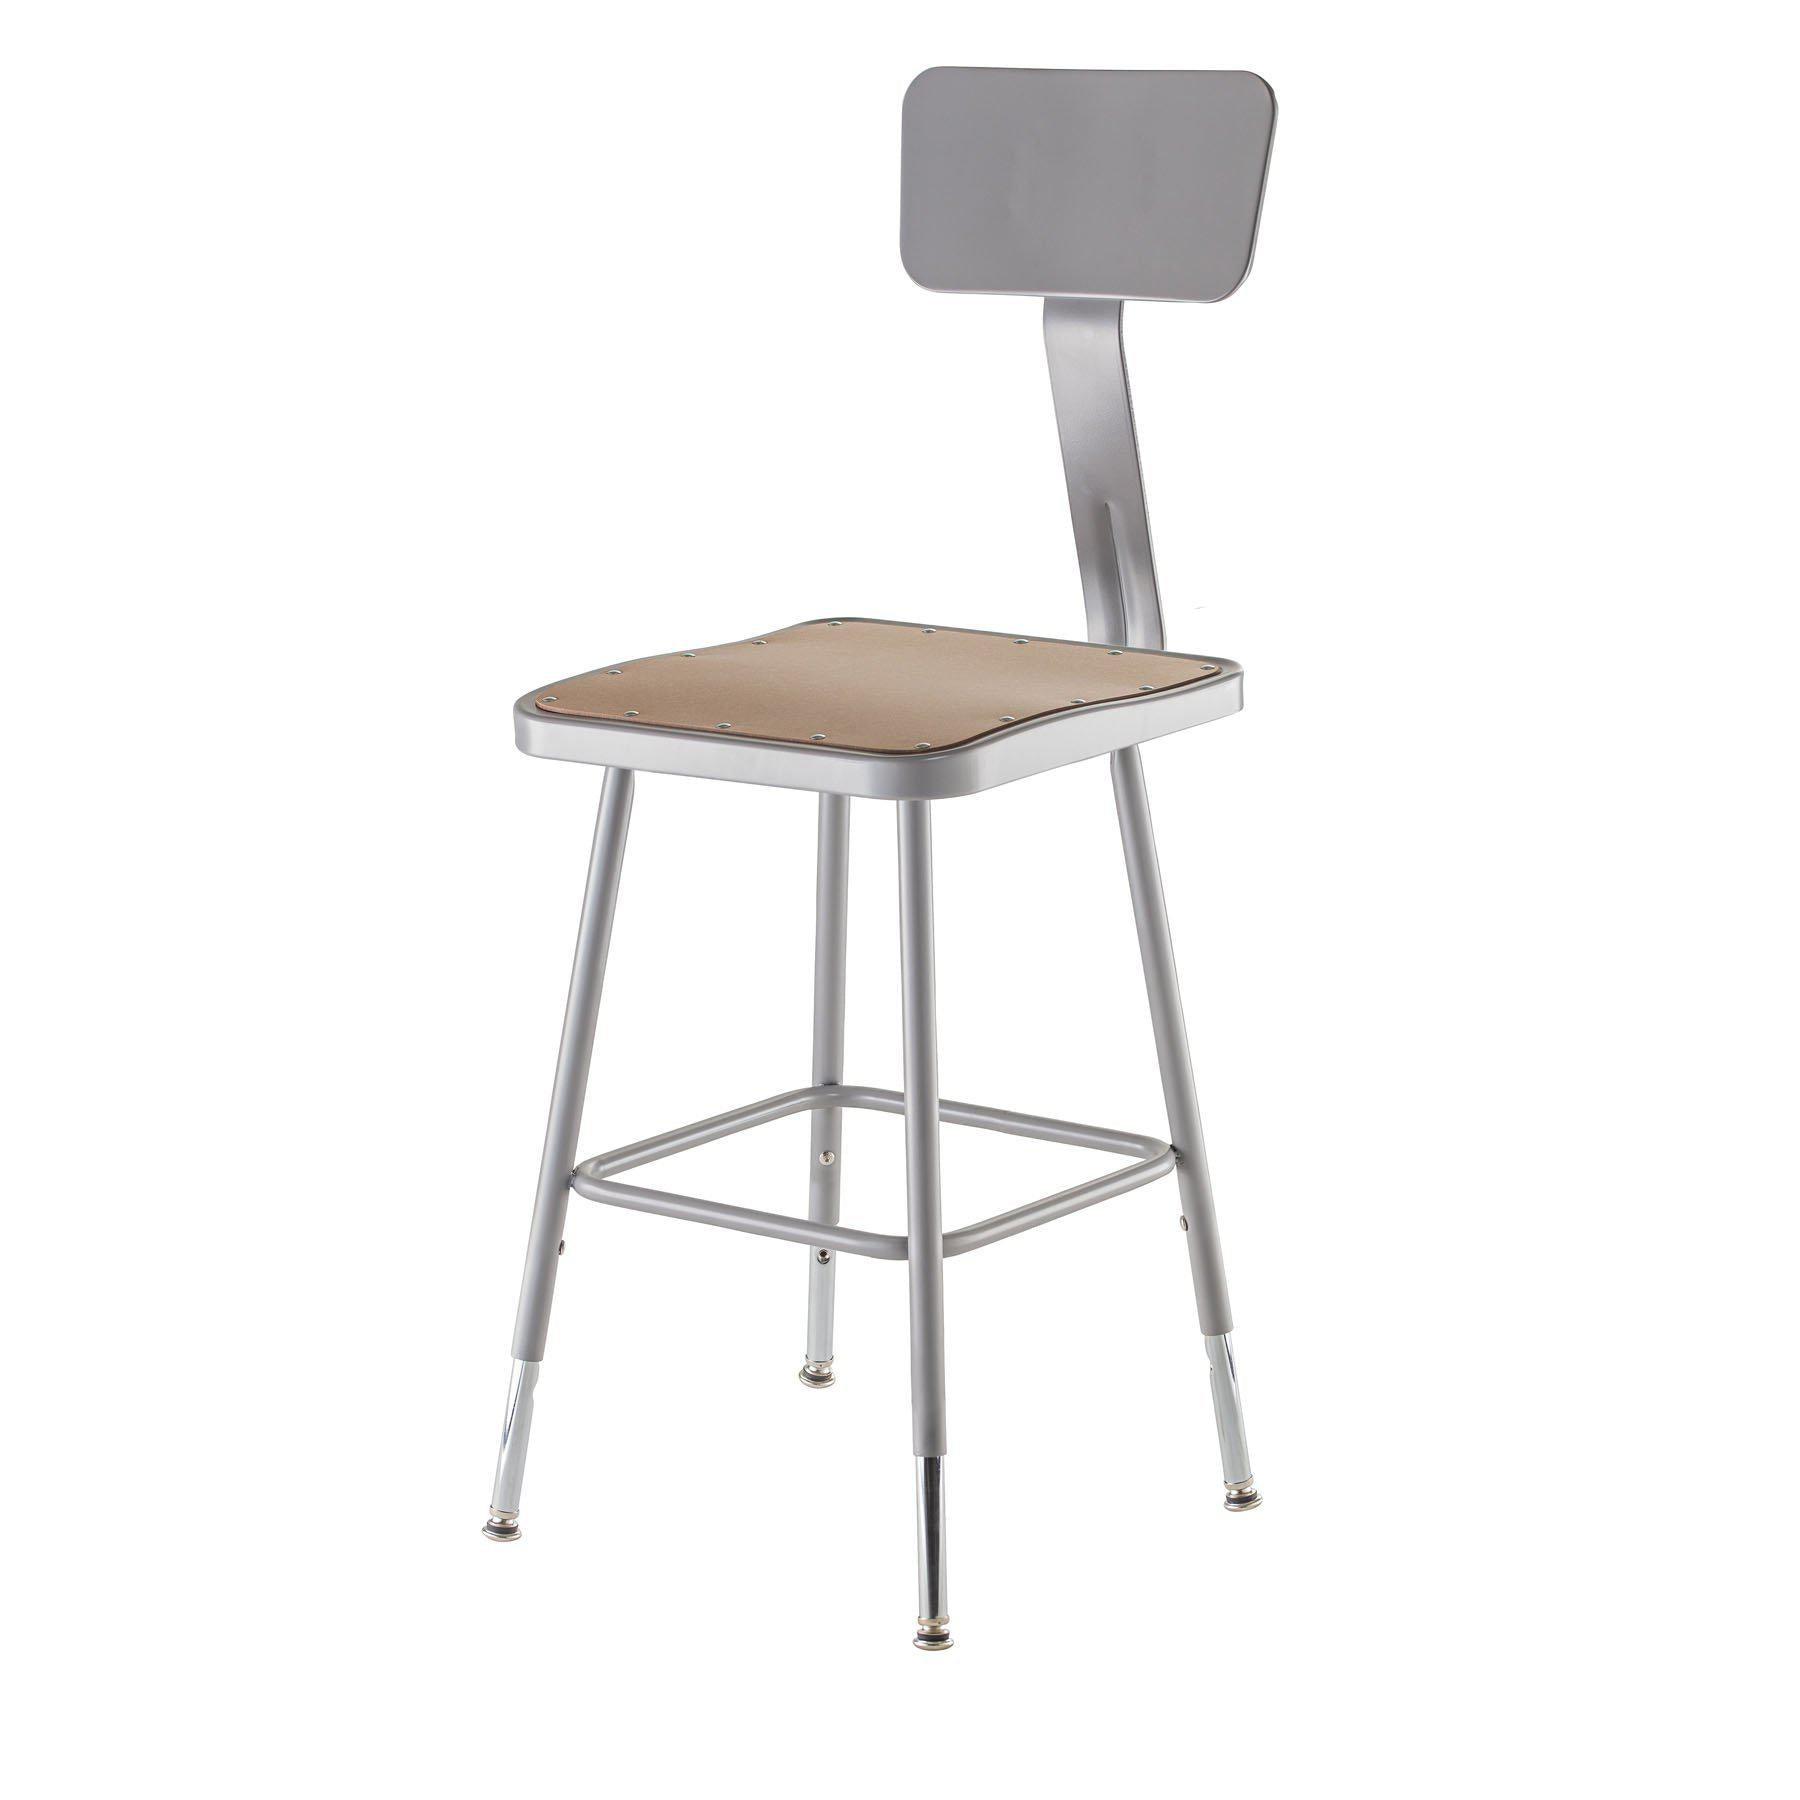 "Height Adjustable Heavy Duty Square Seat Steel Stool With Backrest, Grey-Stools-19"" - 27""-"